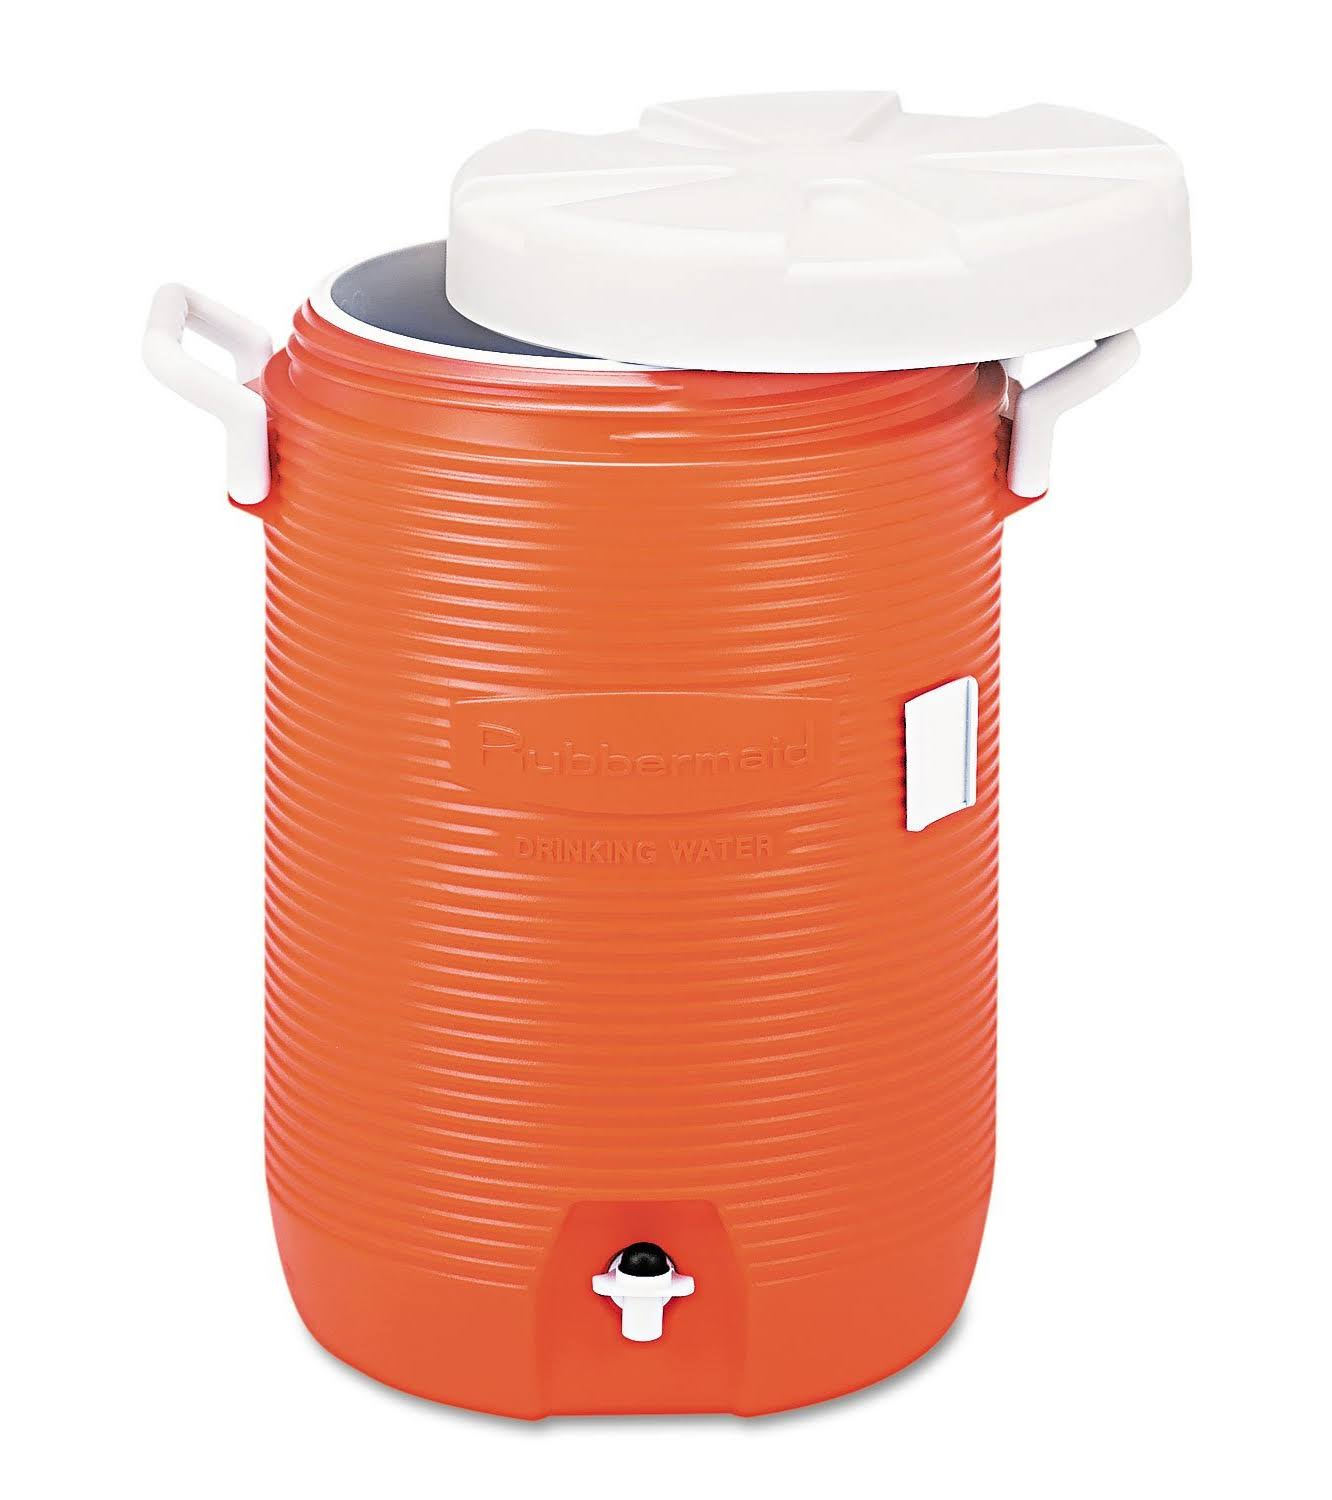 Rubbermaid Home Products 1840999 Water Coolers - Orange, 5gal